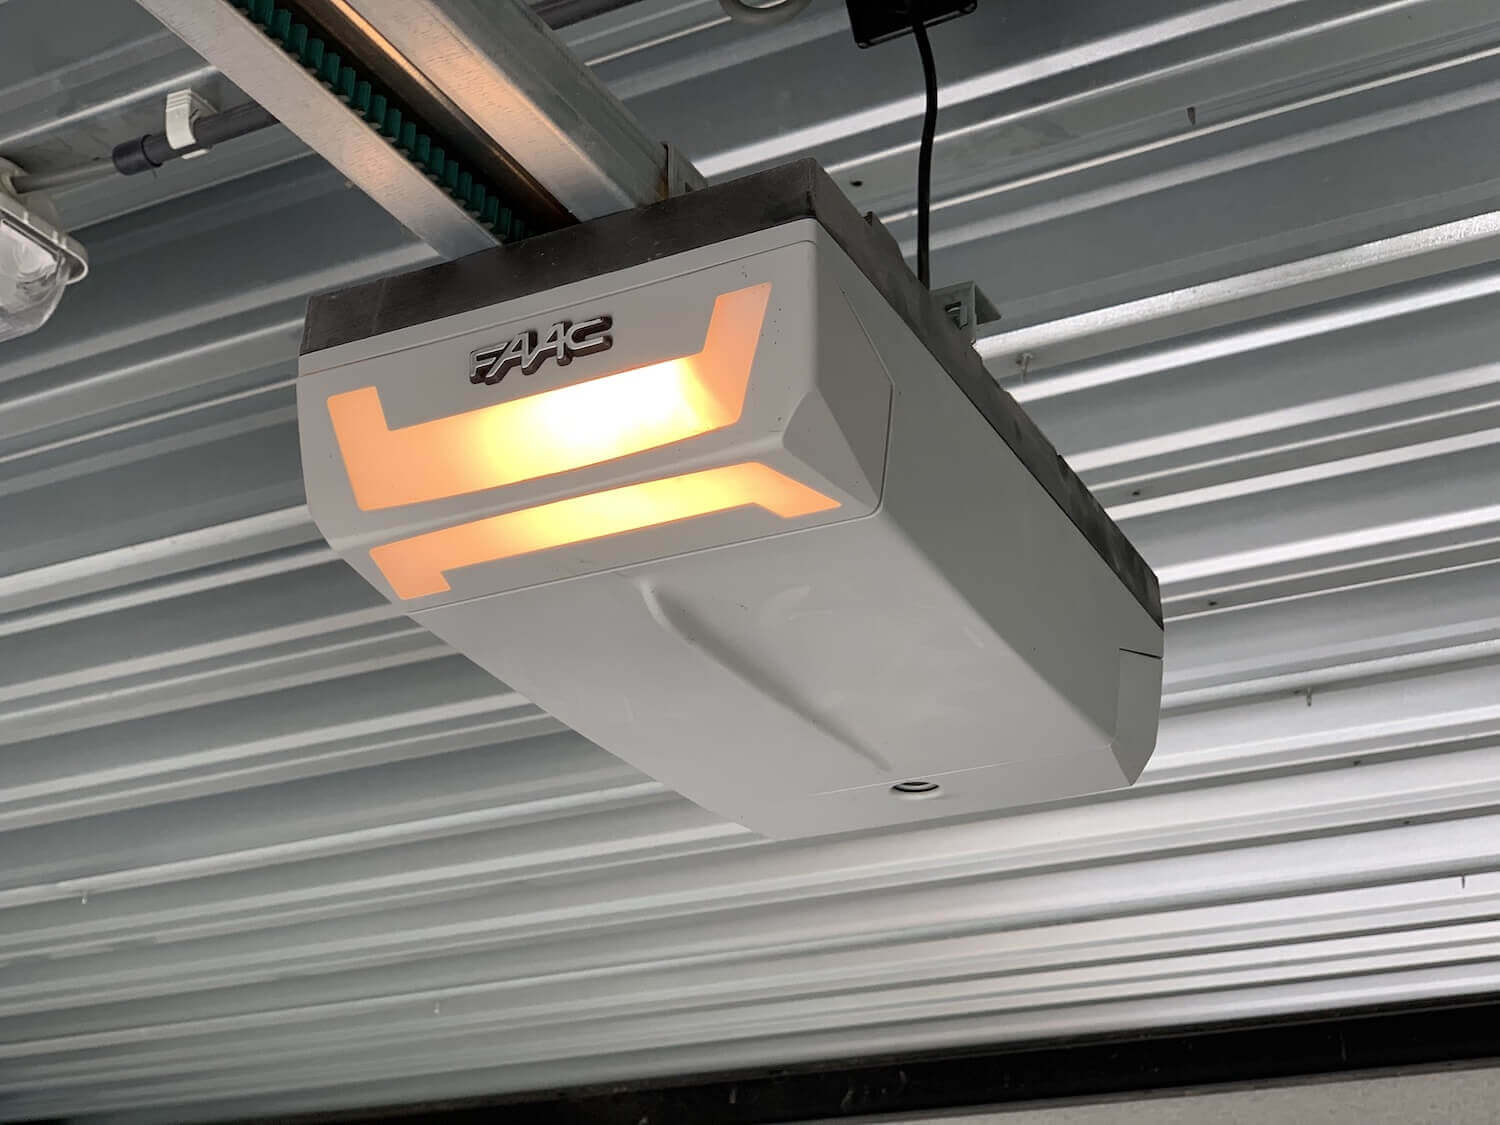 FAAC Garage Door Opener